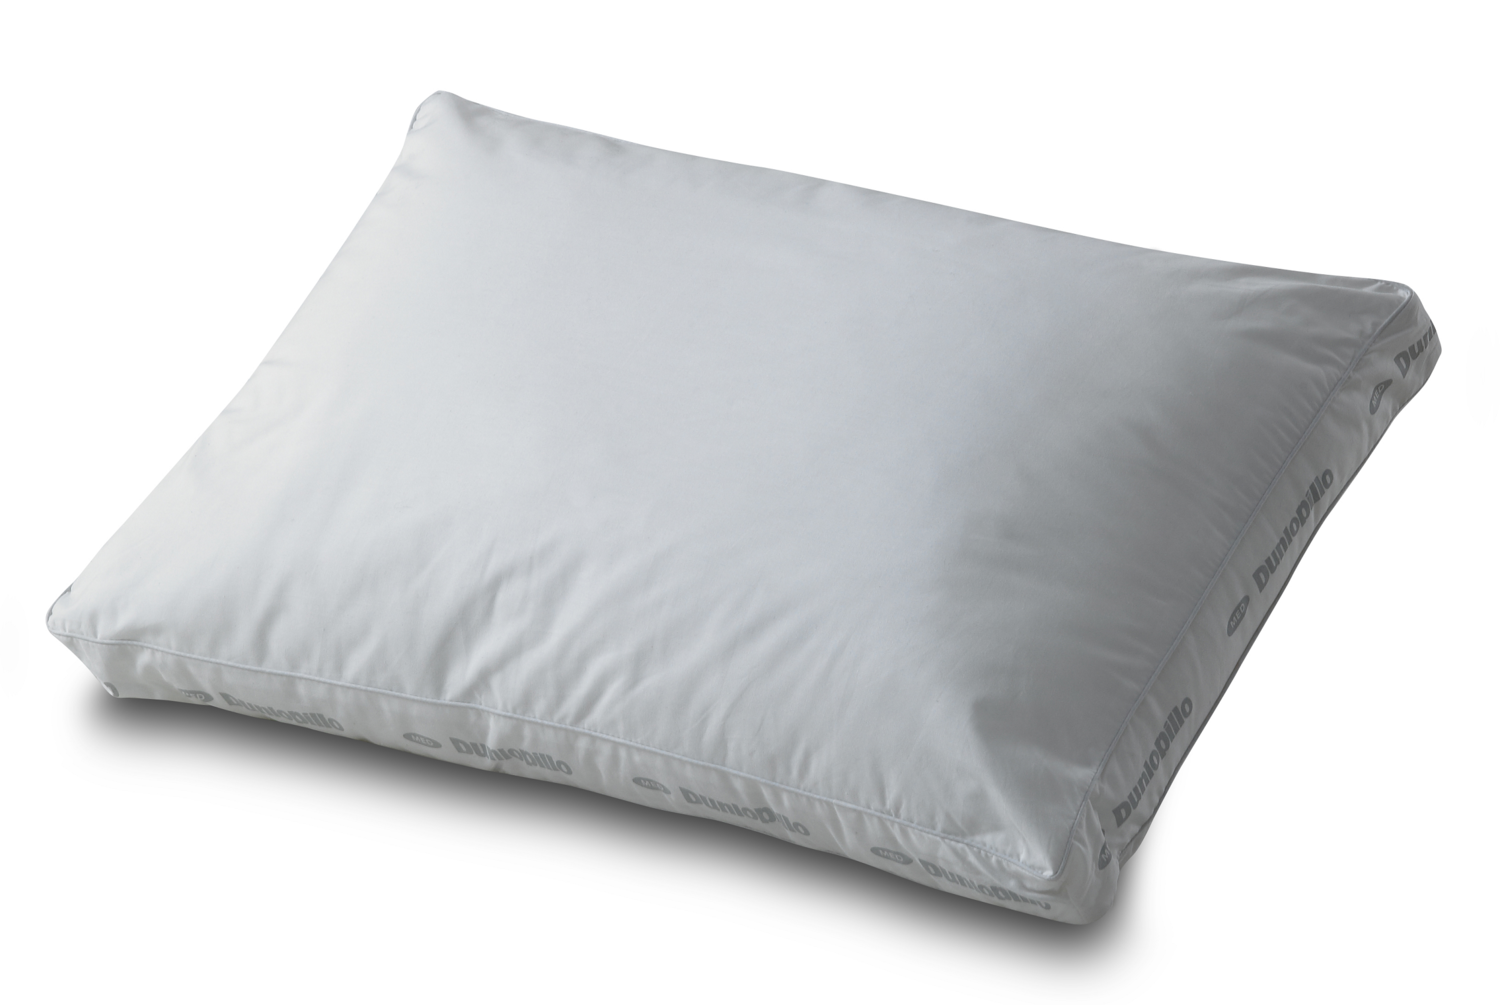 dunlopillo celeste latex layer pillow medium from. Black Bedroom Furniture Sets. Home Design Ideas